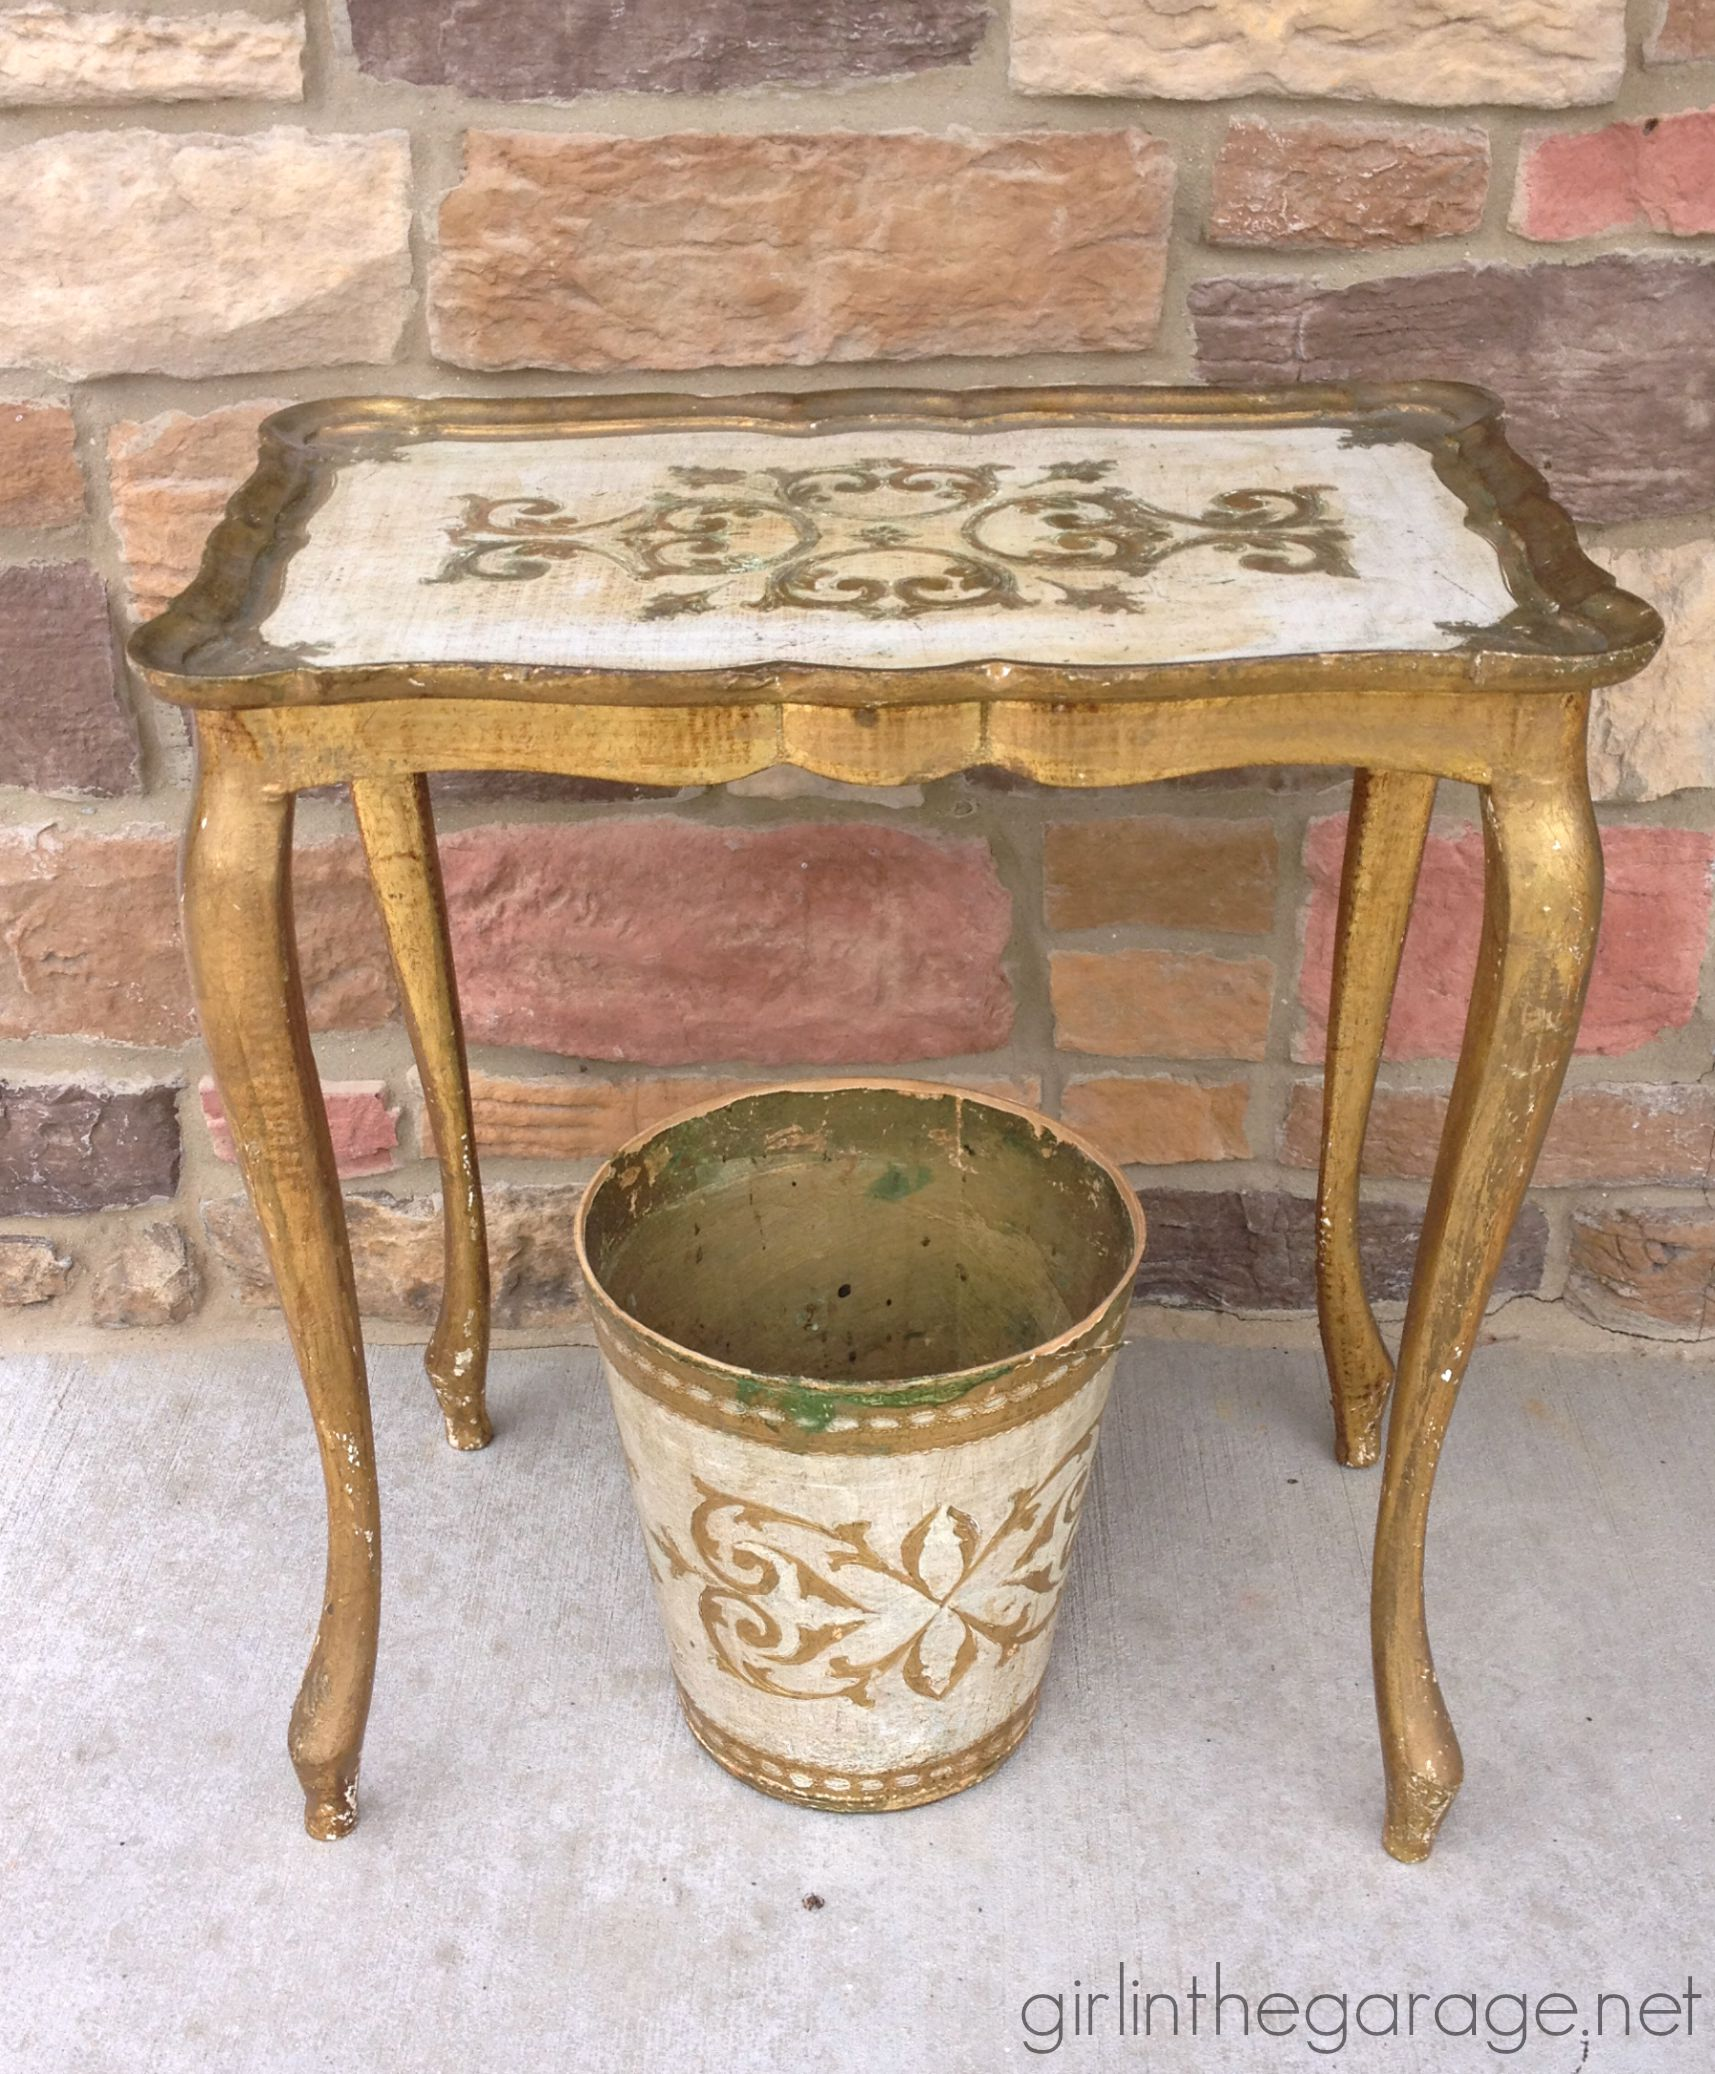 IMG_6787 Vintage Gold Table Trash Can